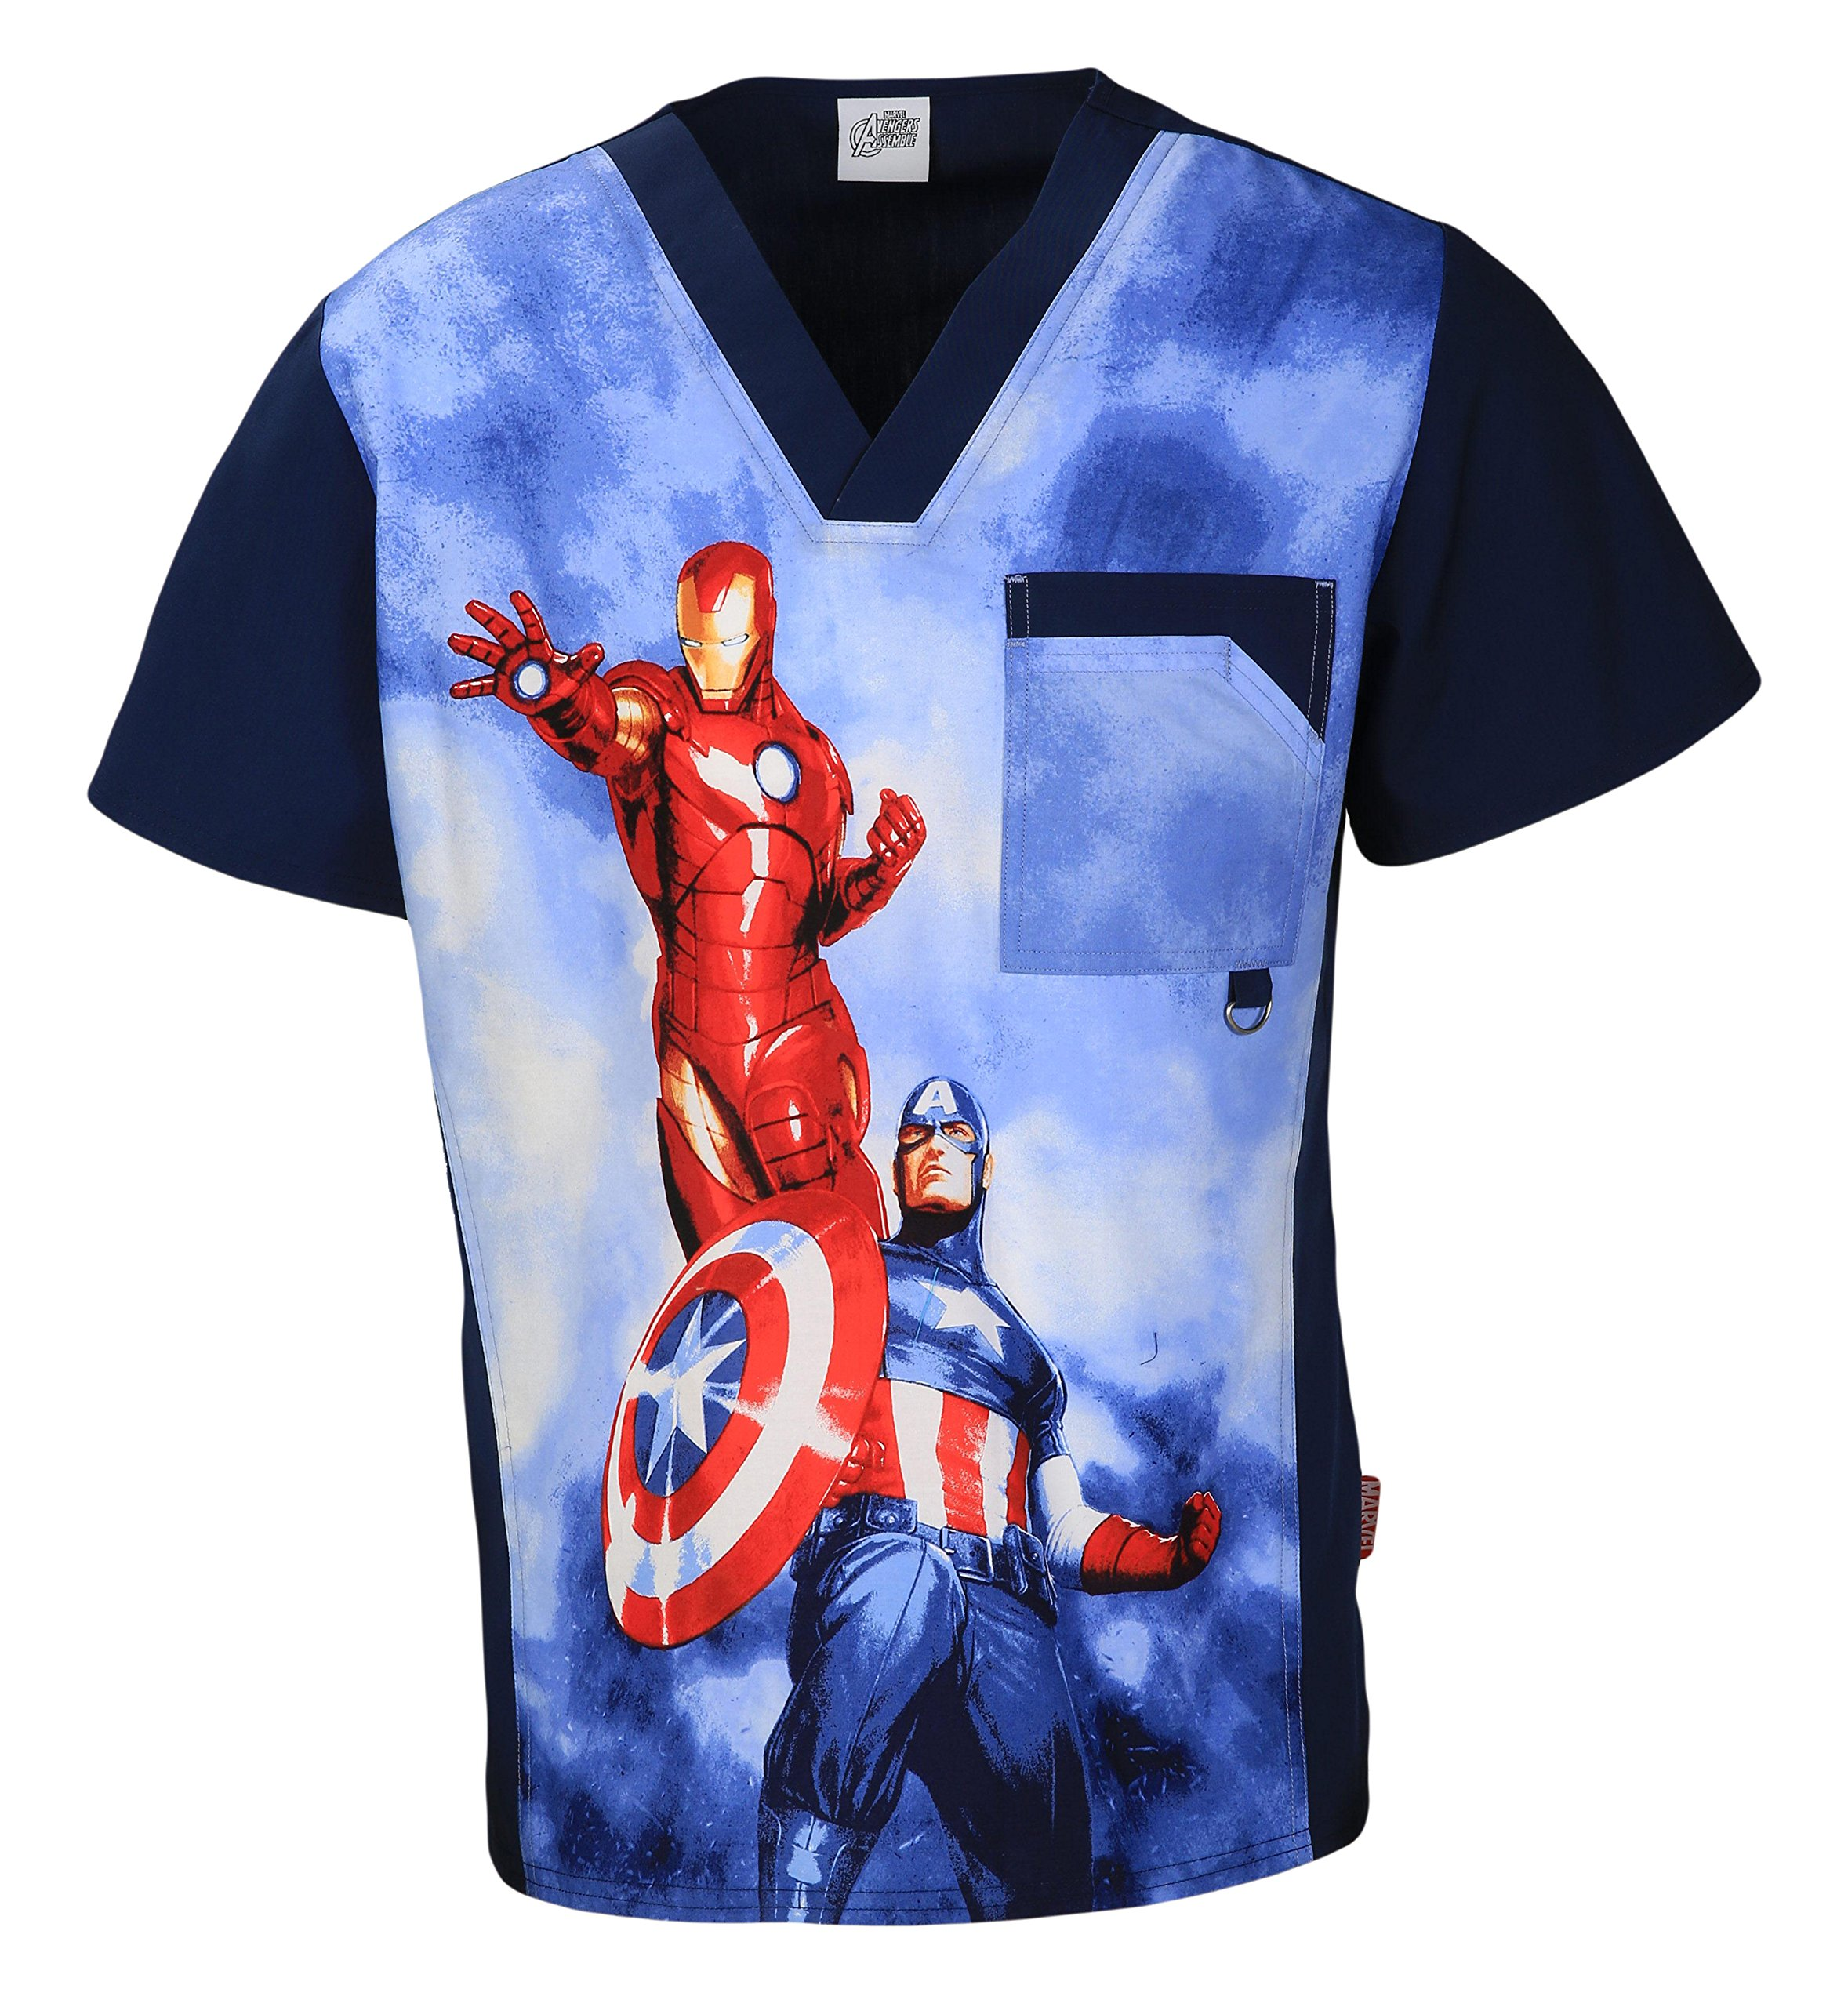 6788CB MAHE L Cherokee Tooniforms Uniform Men's Scrub V-Neck Top Heroes Marvel